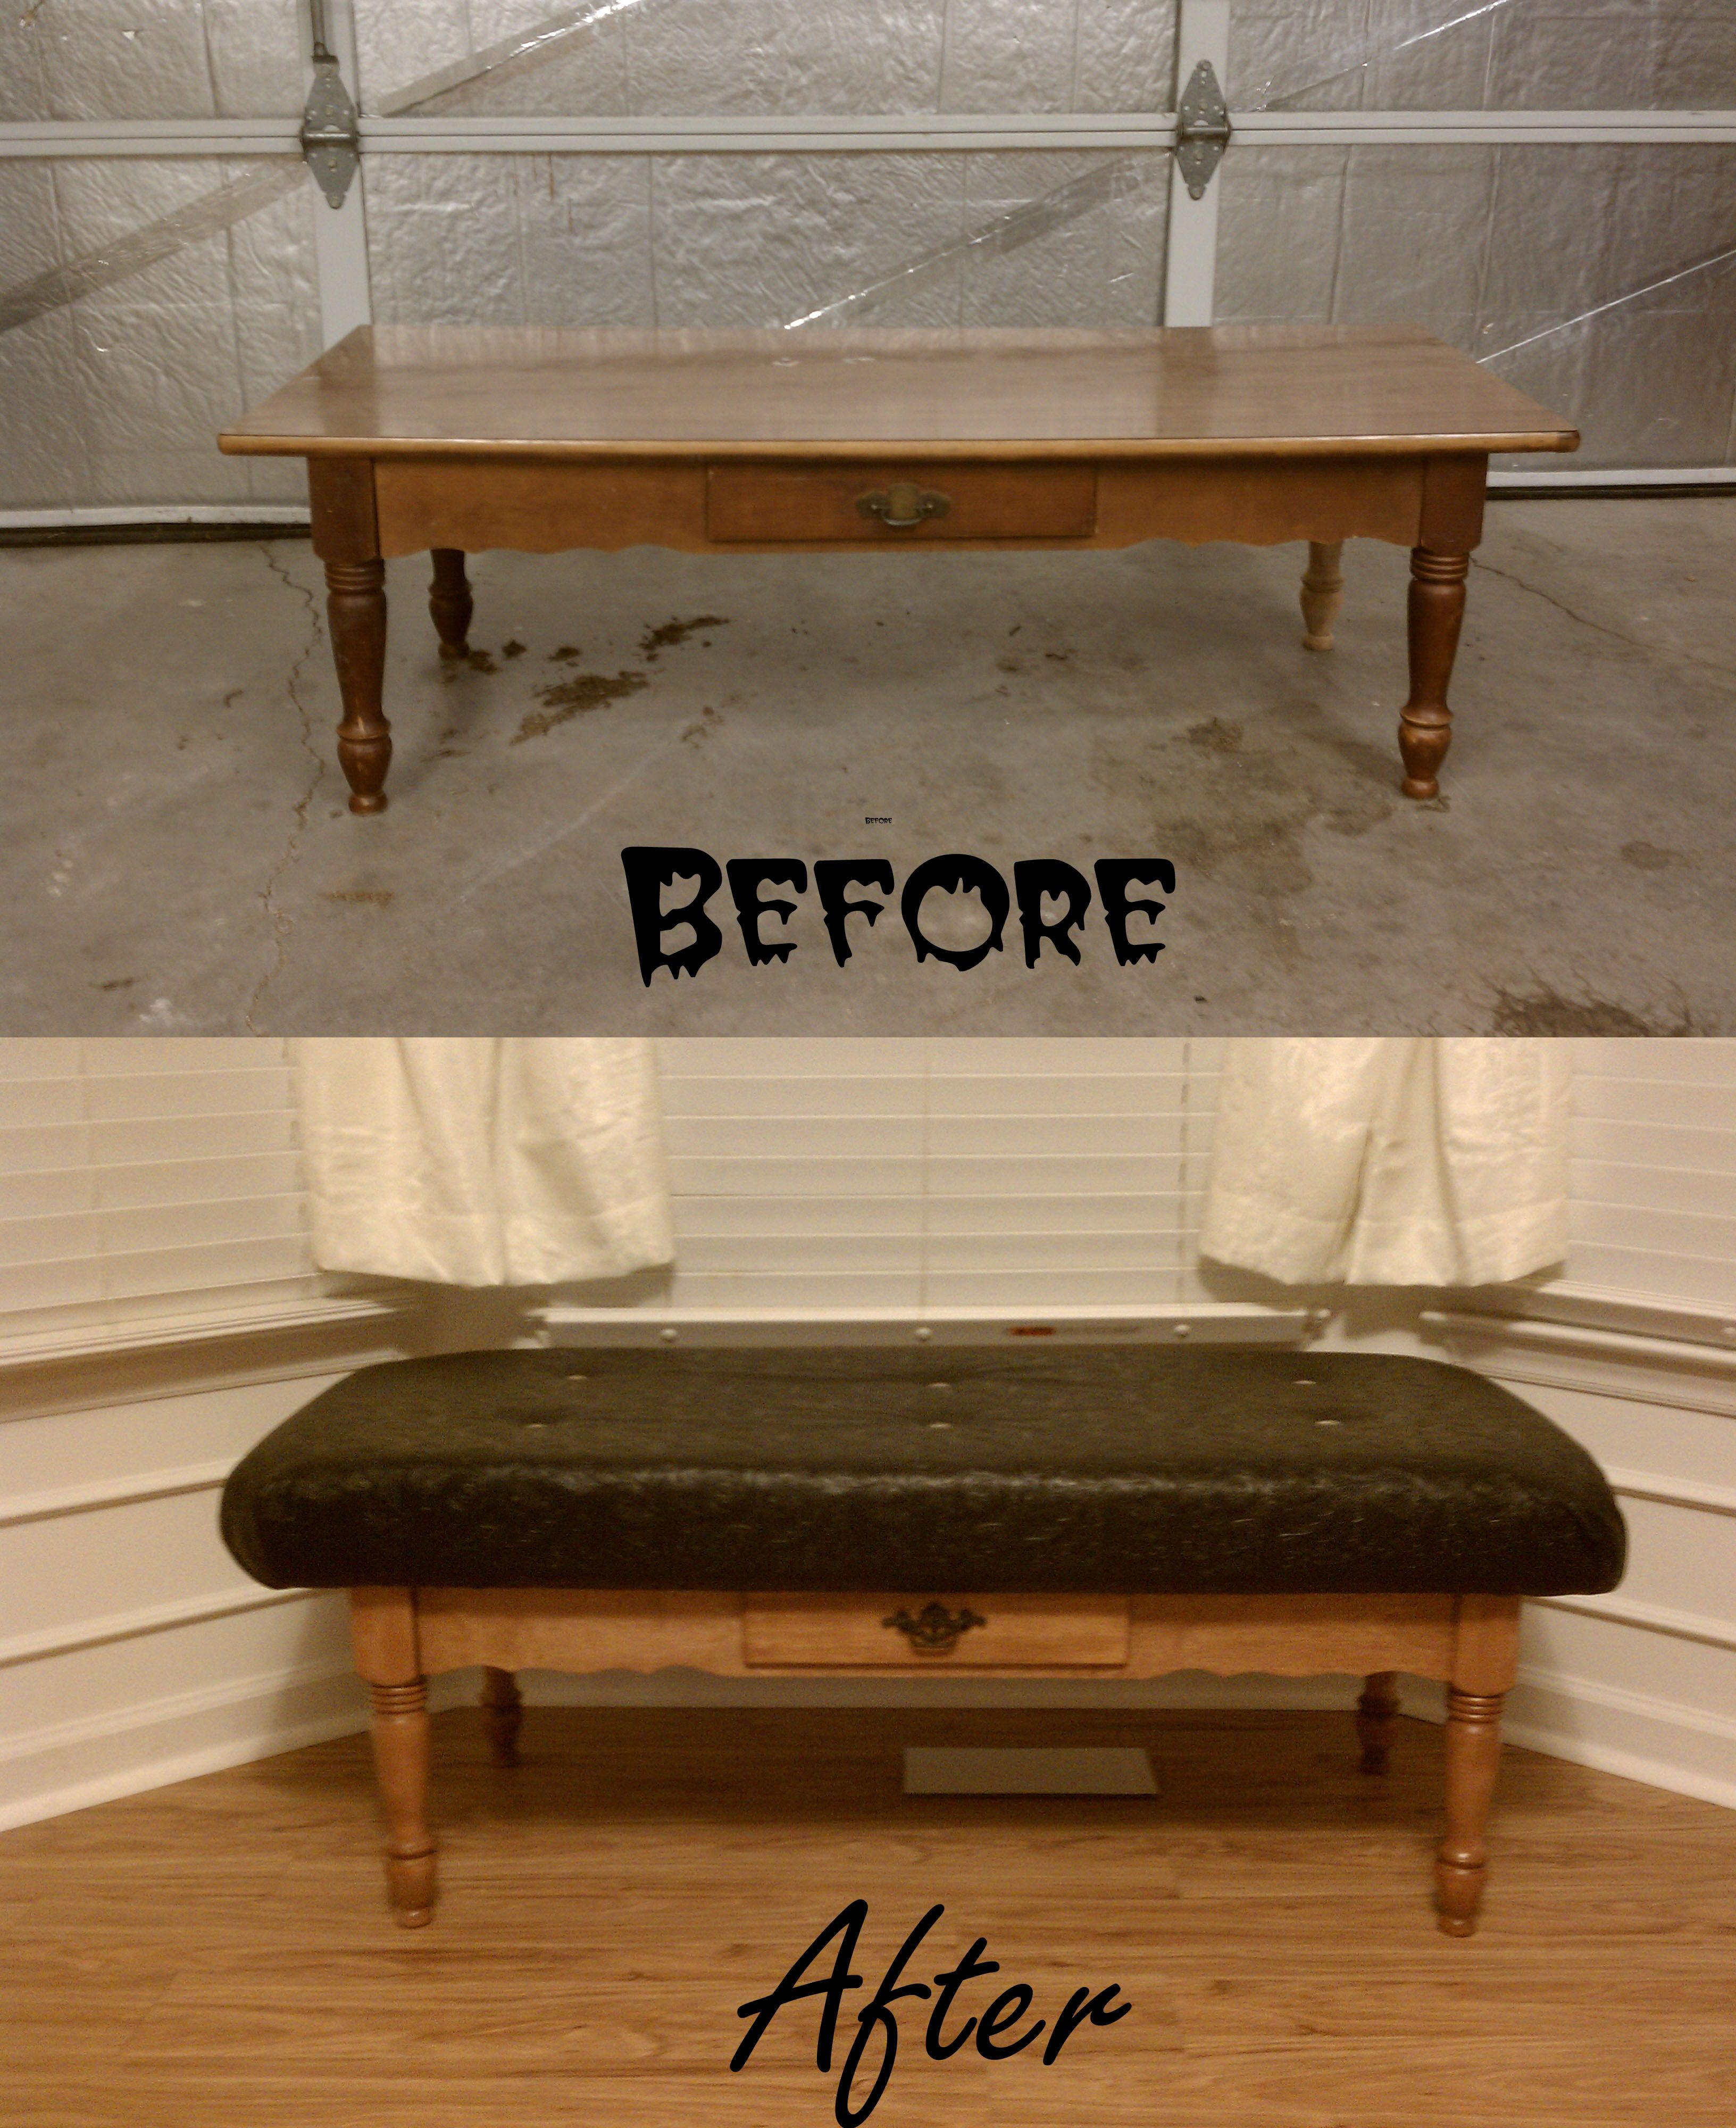 Upholstered Bench Coffee Table Xxx 8356 1320694789 1 Jpg Upholstered Coffee Table Antique